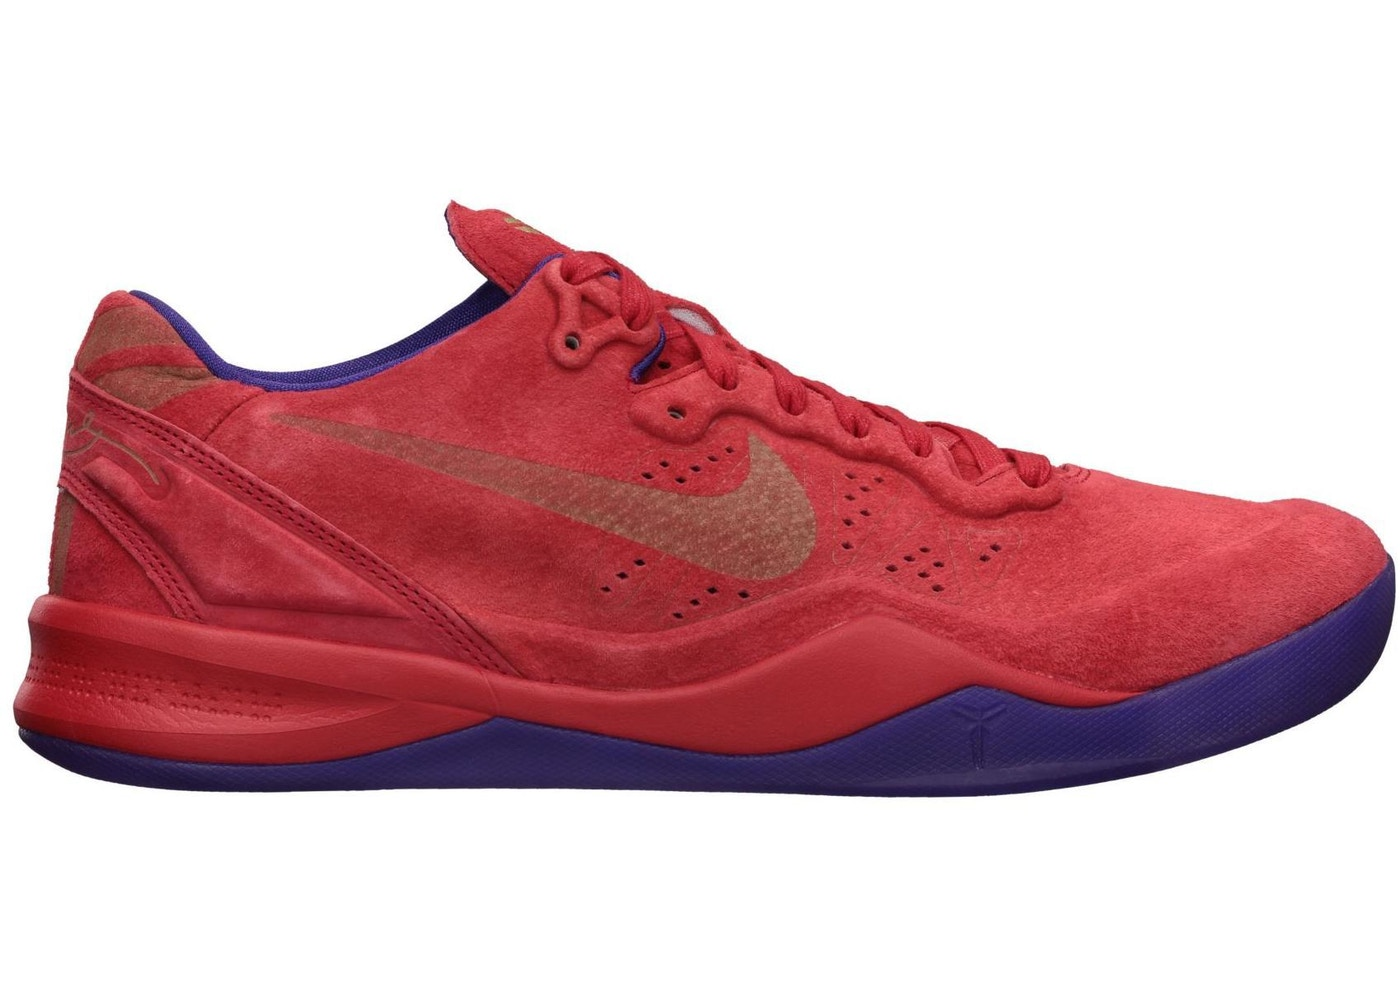 bbbc3684394f Kobe 8 EXT Year of the Snake (Red) - 582554-600